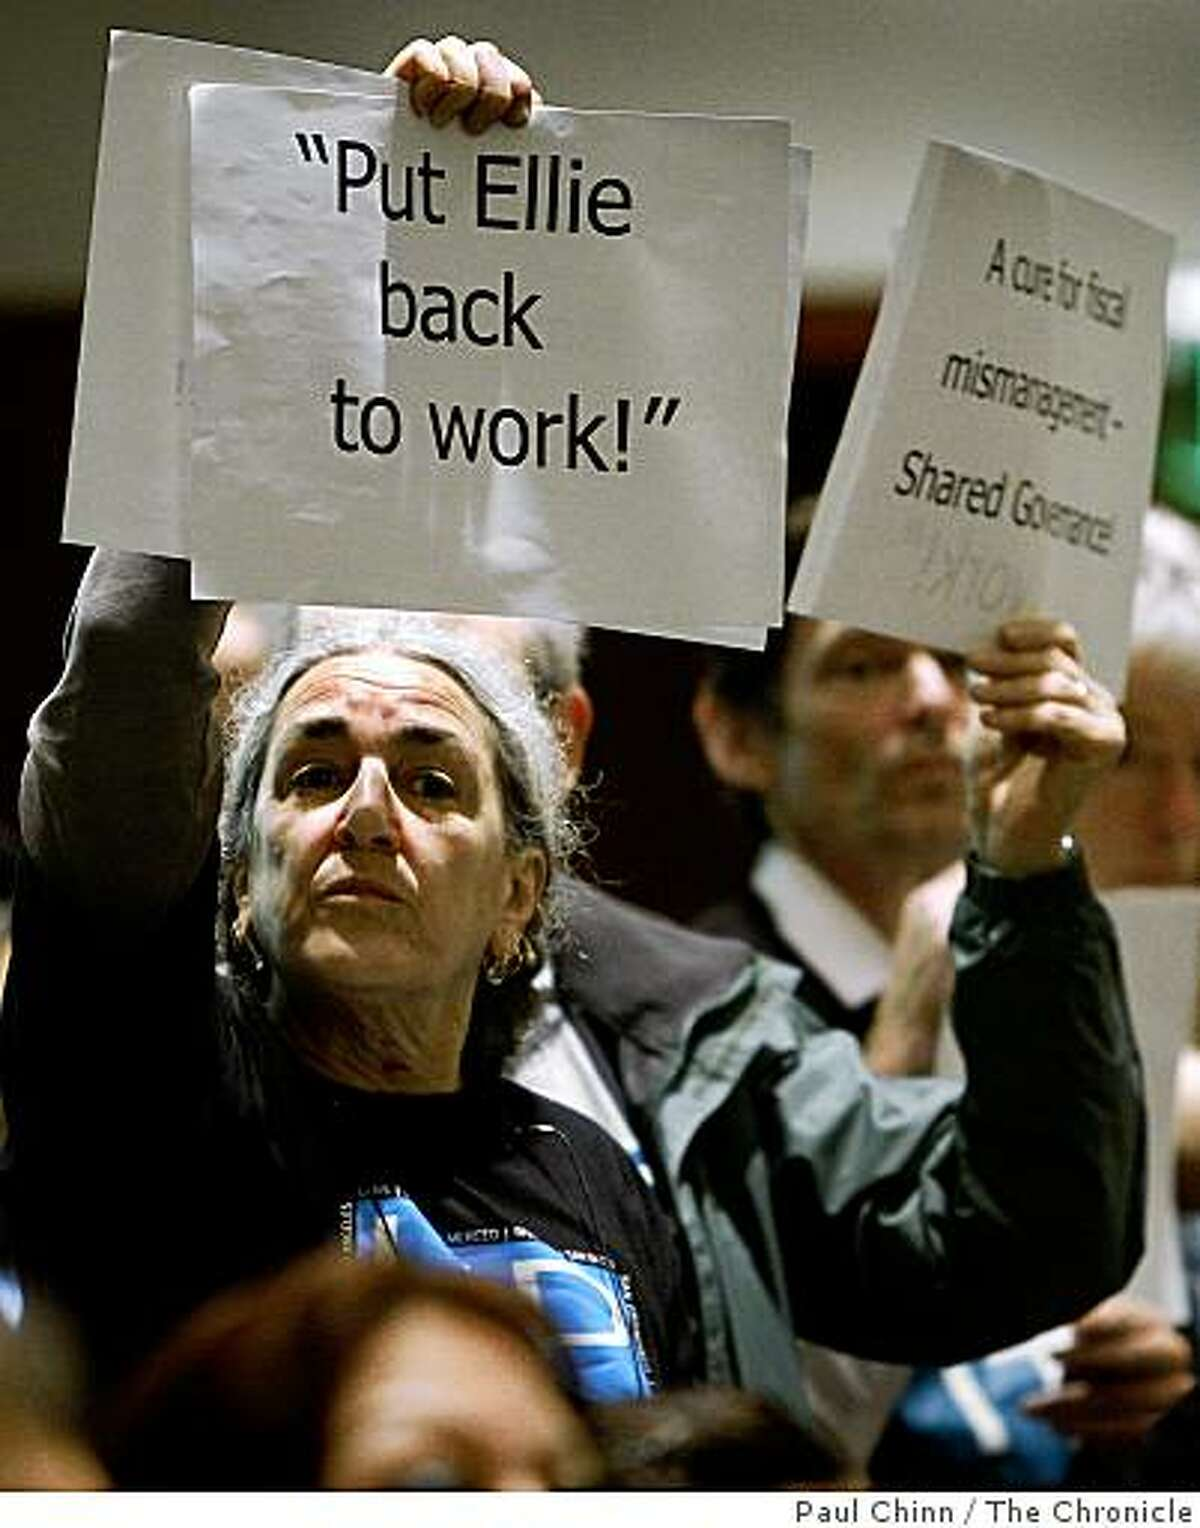 Kathy Ann Miller holds a sign in support of Ellie Corley, a UC Berkeley employee who's being laid off after 33 years, during the UC Regents meeting at the UCSF Mission Bay campus in San Francisco, Calif., on Wednesday, Feb. 4, 2009.